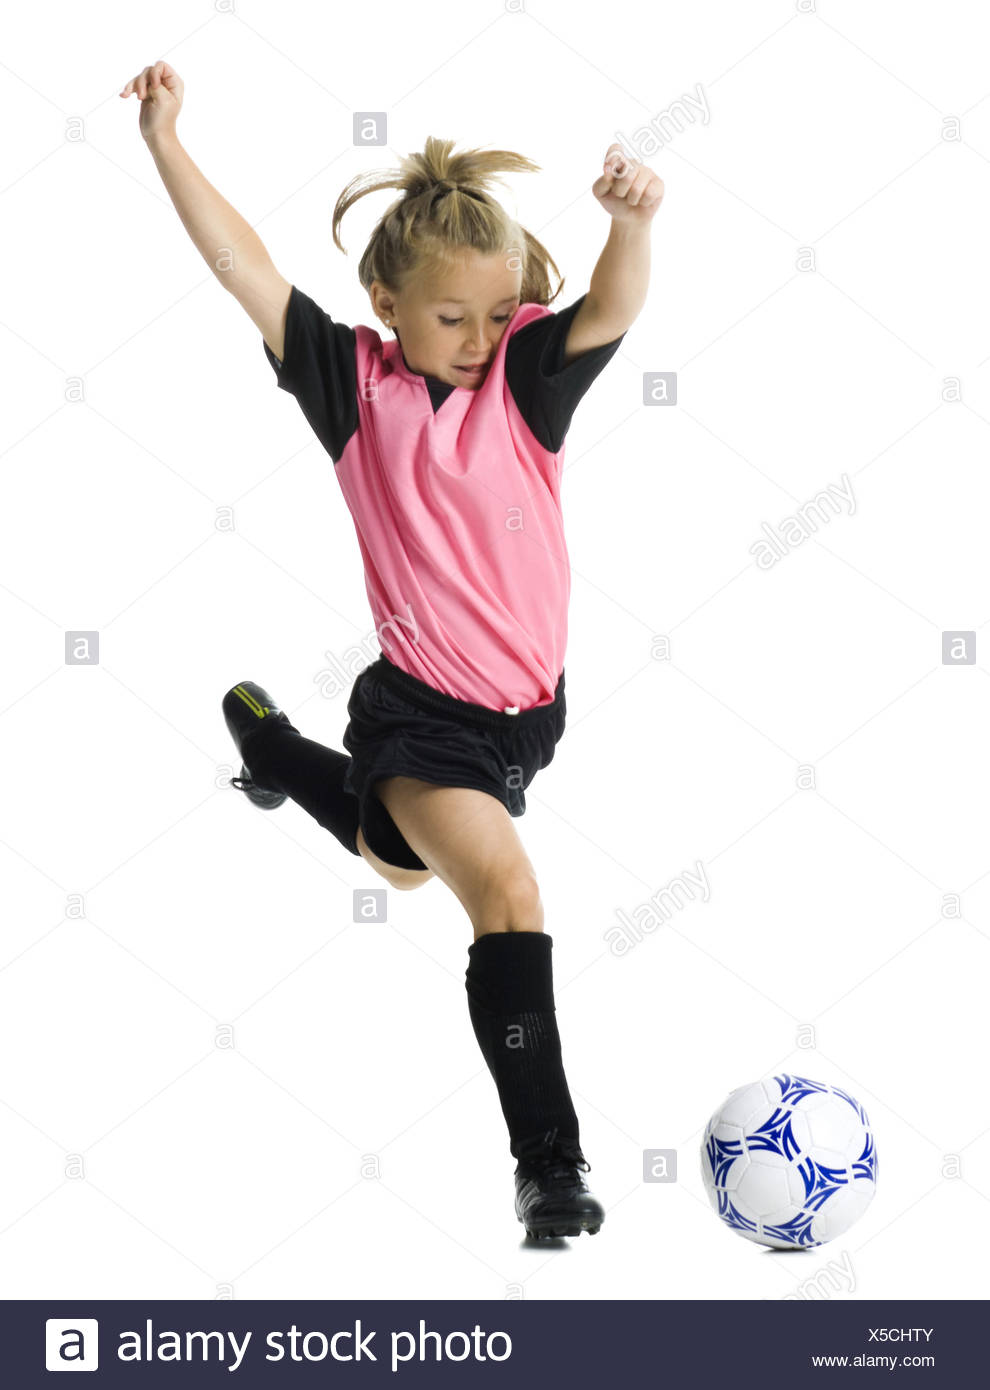 dea02f482 Young girl in a soccer uniform with ball Stock Photo  278716619 - Alamy